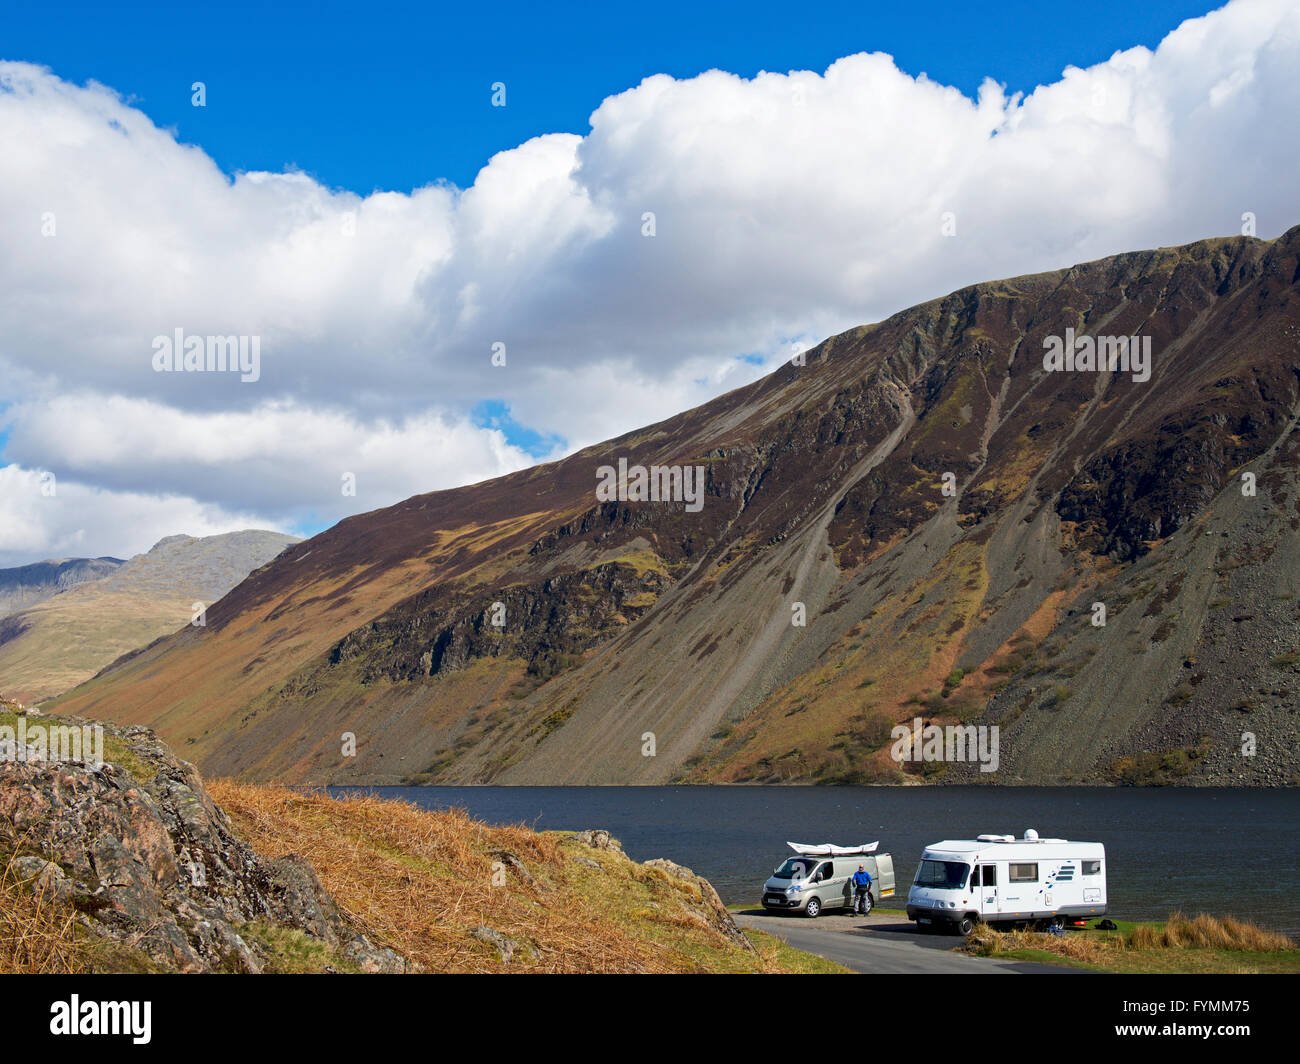 Motorhome and camper van parked on shore of Wastwater, Wasdale, Lake District National Park, Cumbria, England UK - Stock Image